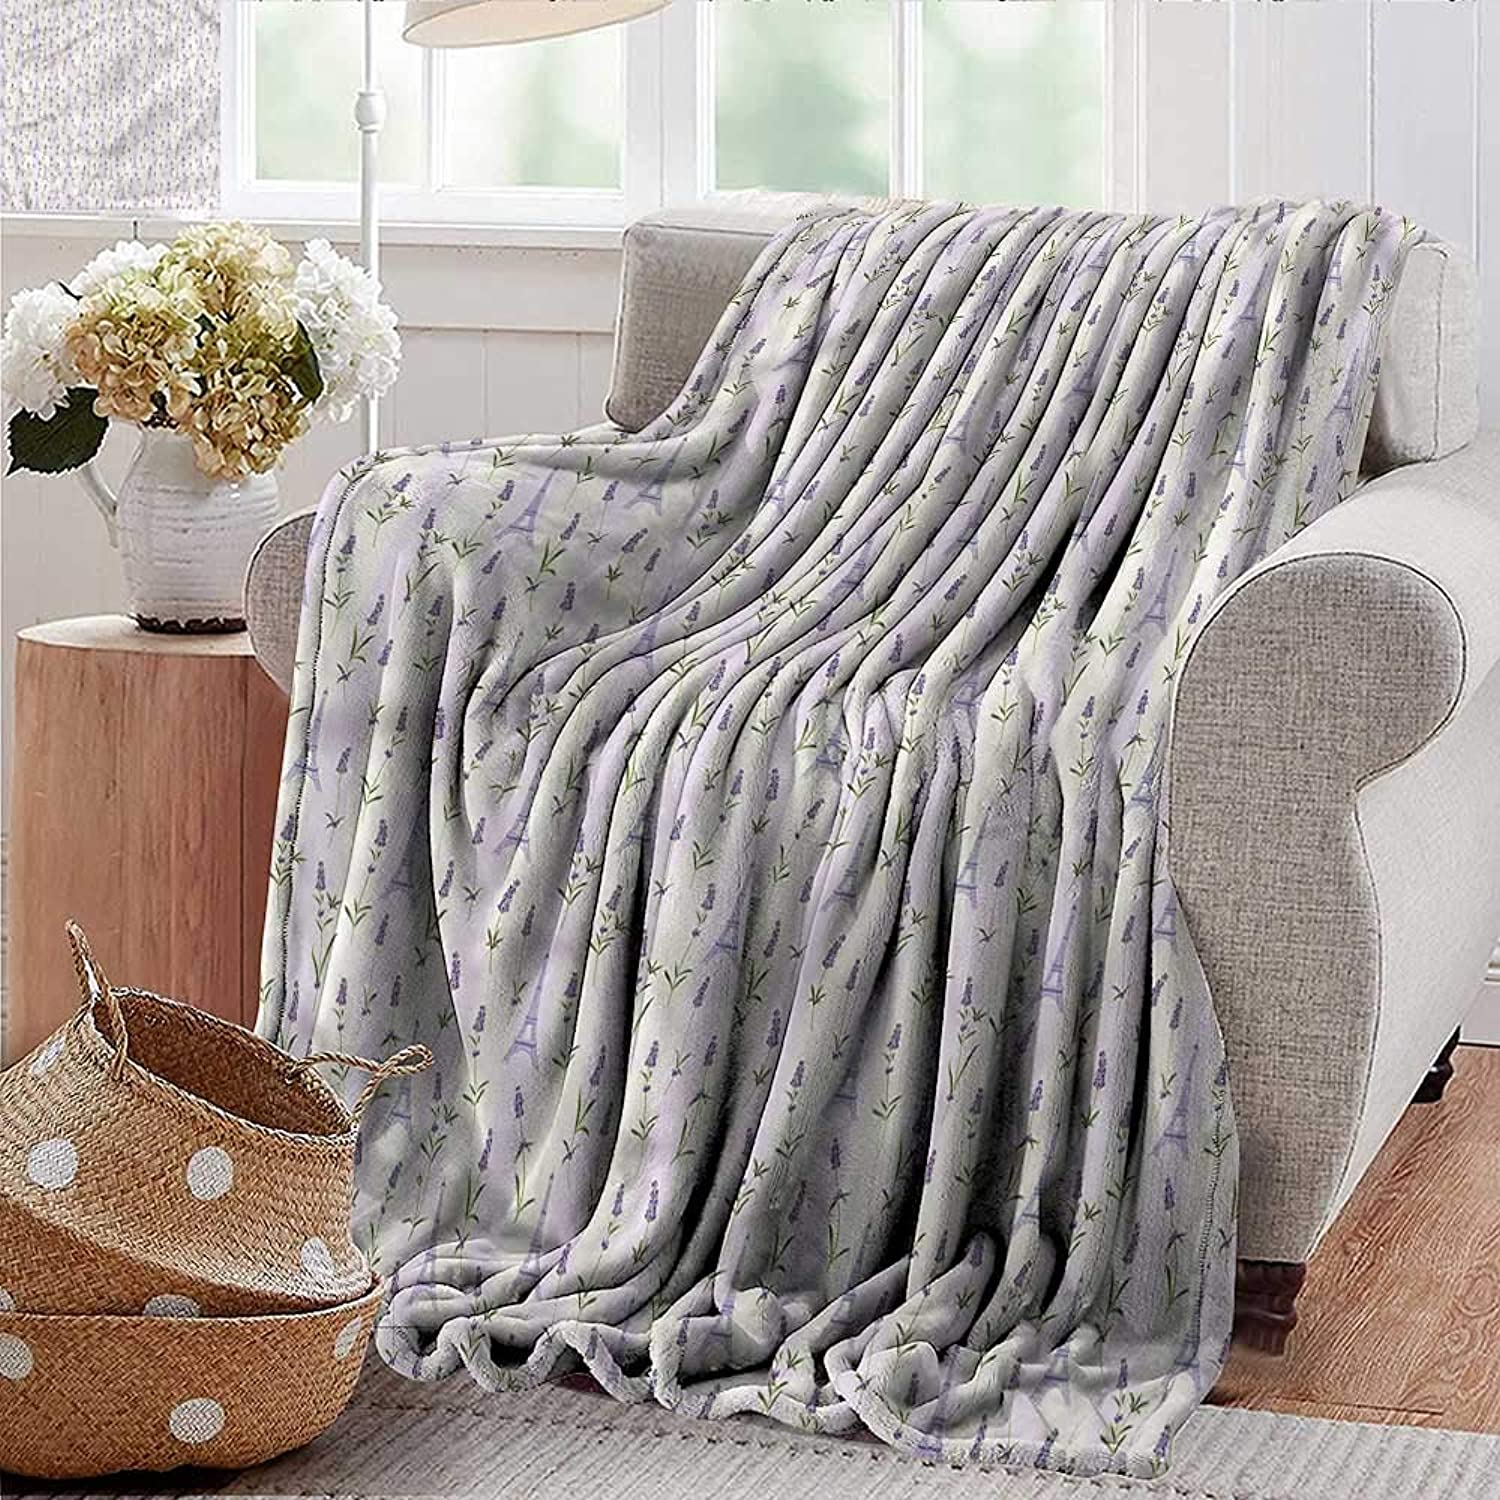 Xaviera Doherty Summer Blanket Paris,Lavender Eiffel Pastel Weighted Blanket for Adults Kids, Better Deeper Sleep 35 x60